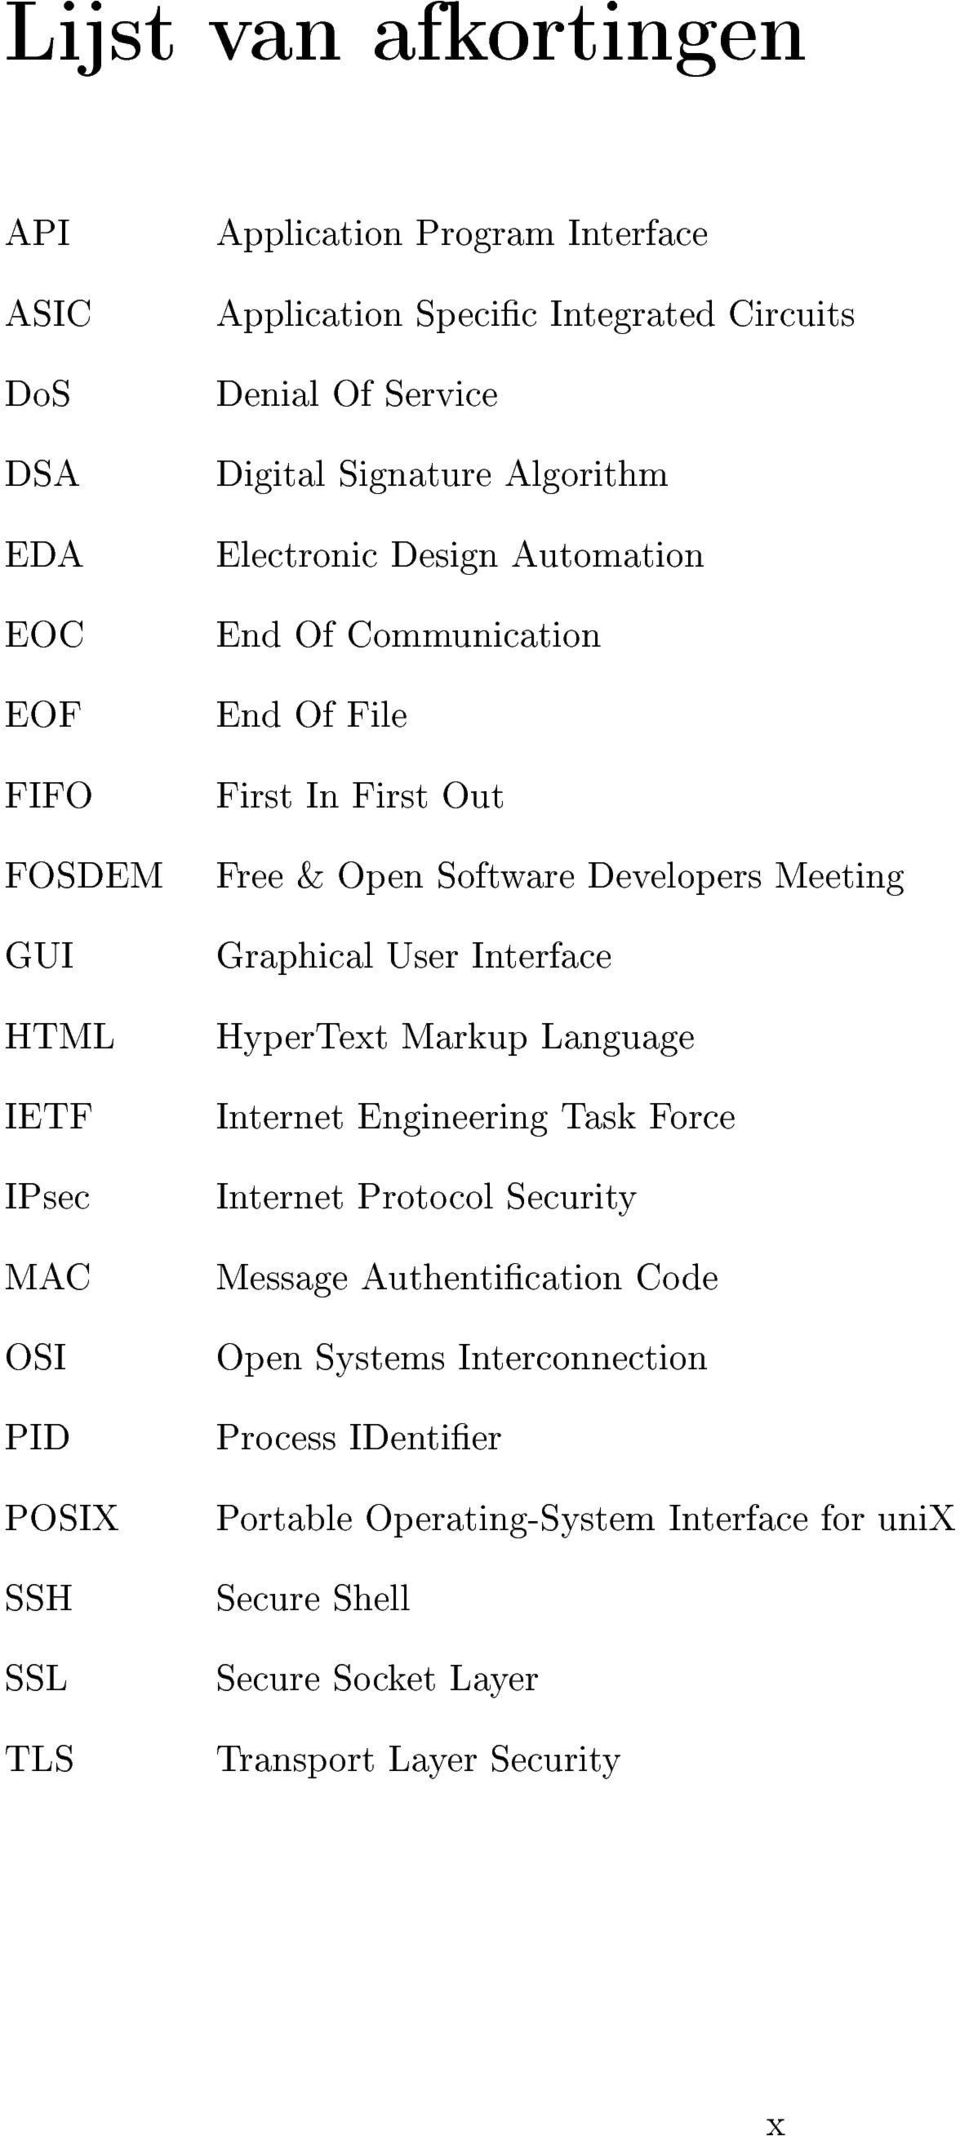 Interface HTML HyperText Markup Language IETF Internet Engineering Task Force IPsec Internet Protocol Security MAC Message Authentication Code OSI Open Systems